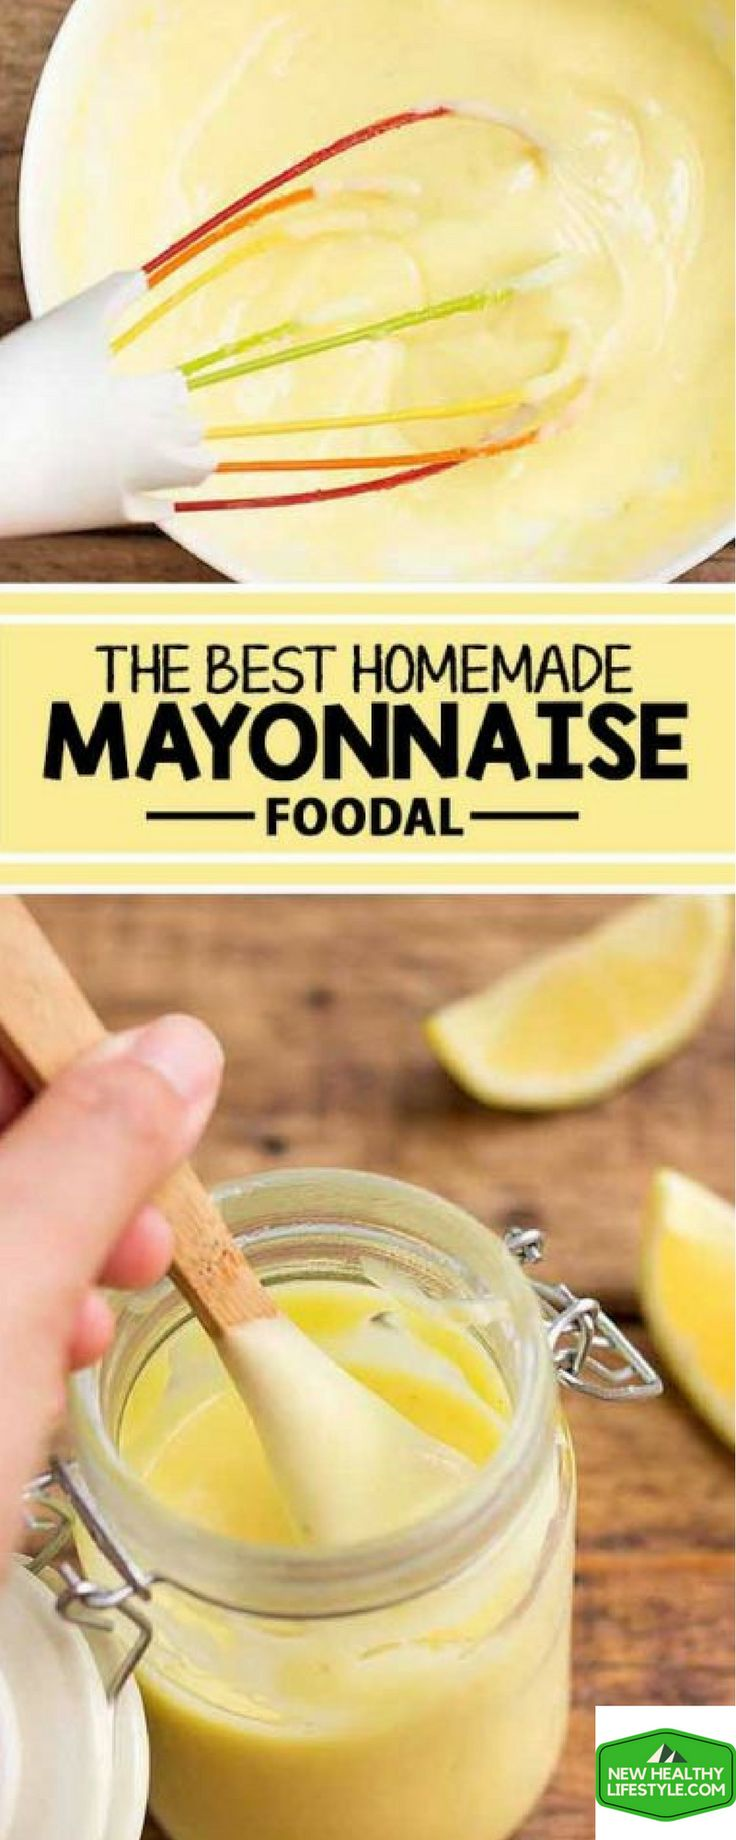 5 DELICIOUS HOMEMADE MAYONNAISE USING REAL FOOD THAT HAS NO ARTIFICIAL ADDITIVES...